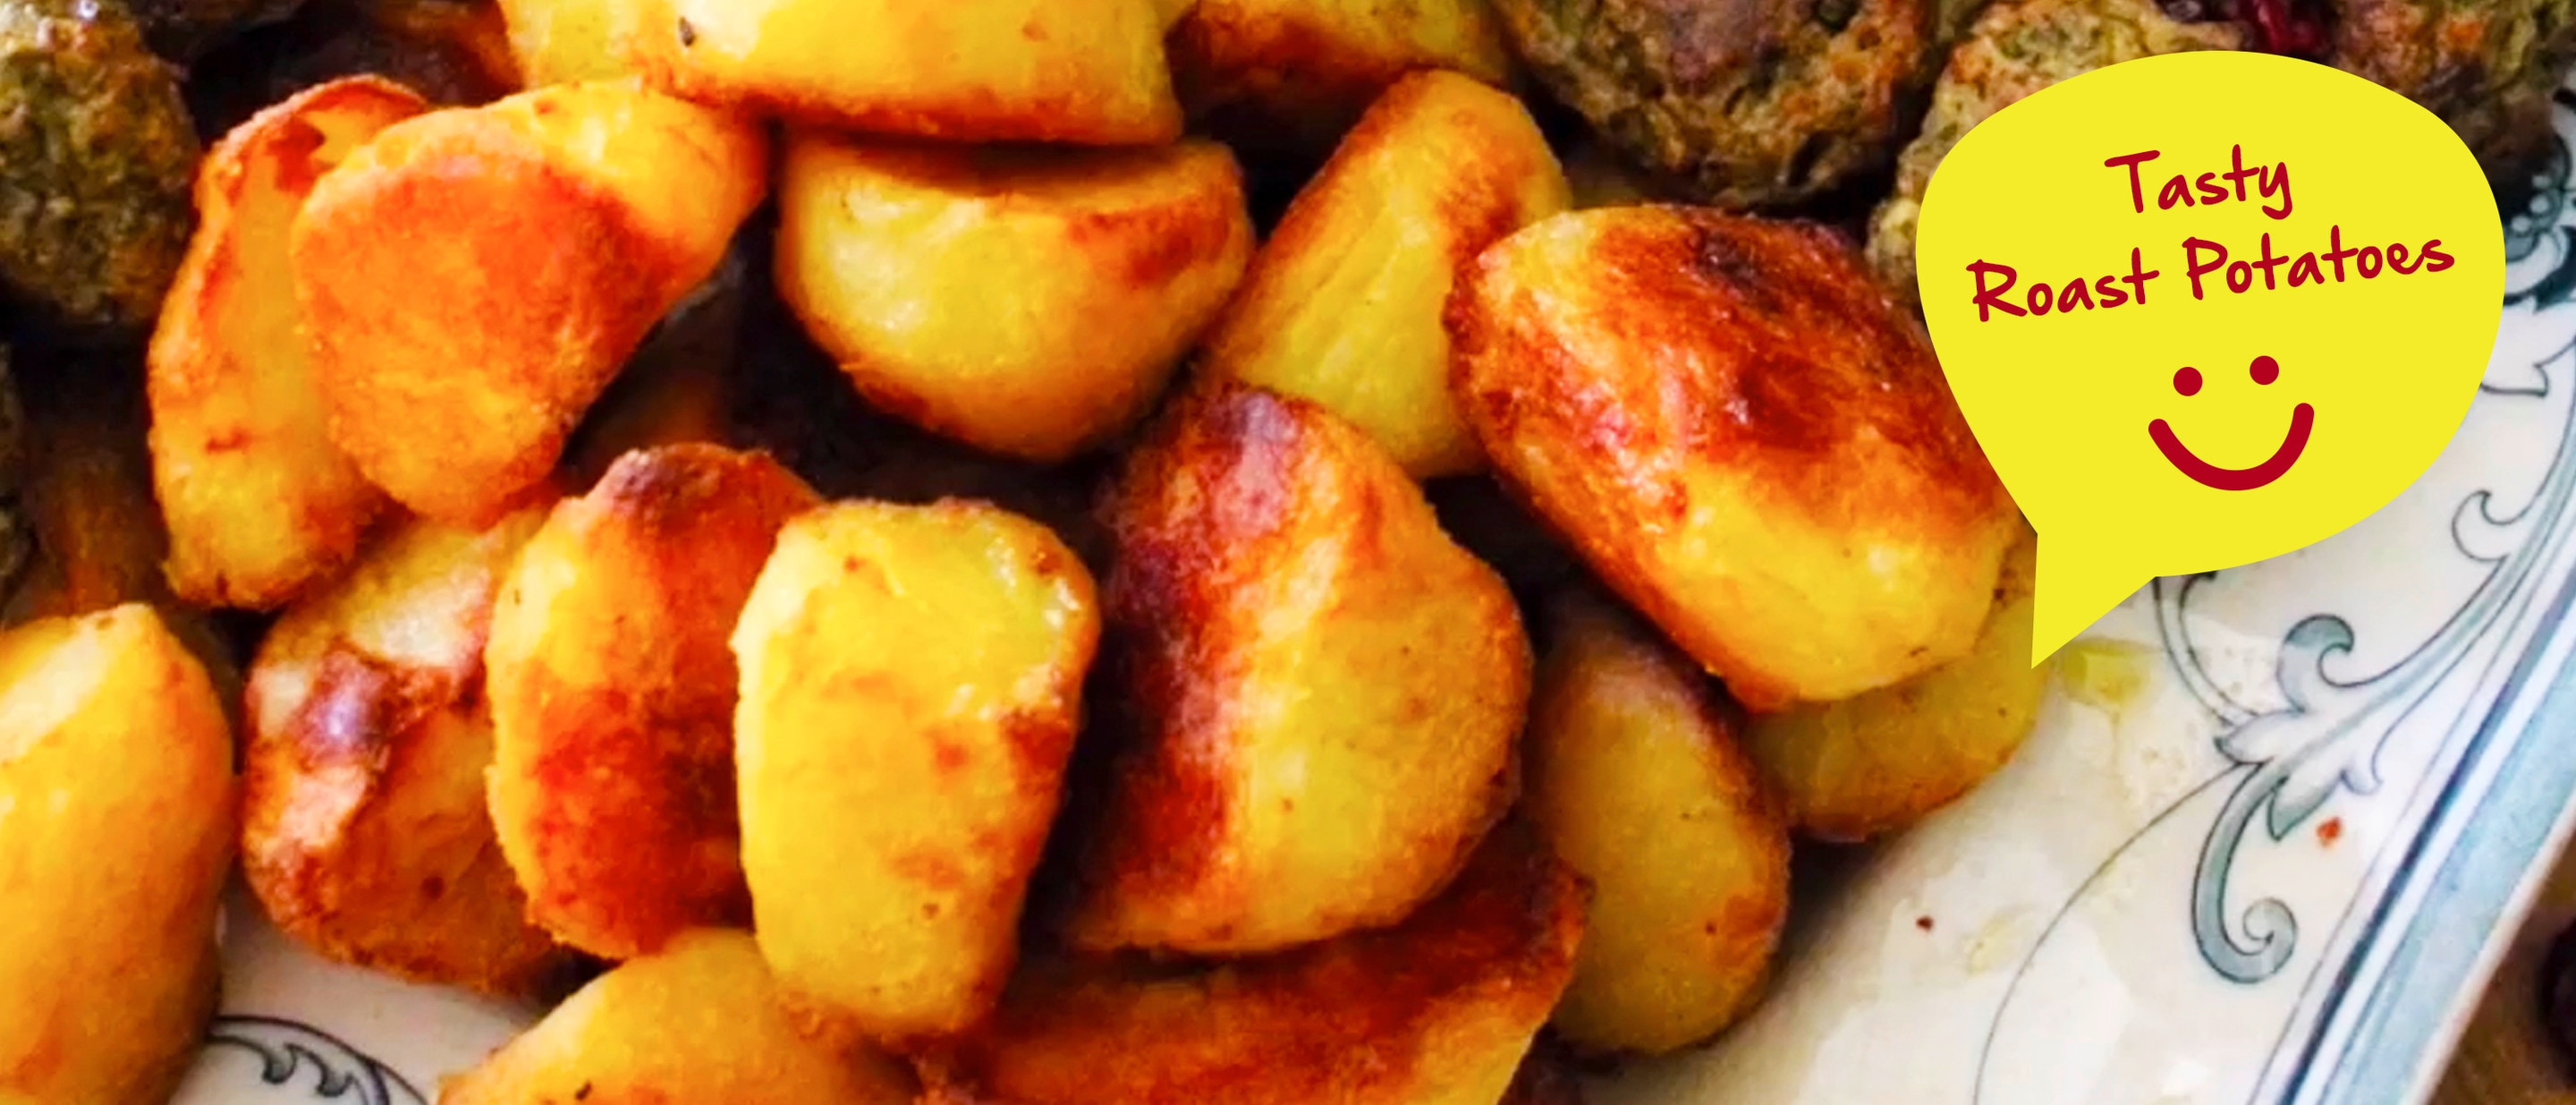 Tasty Roast Potatoes